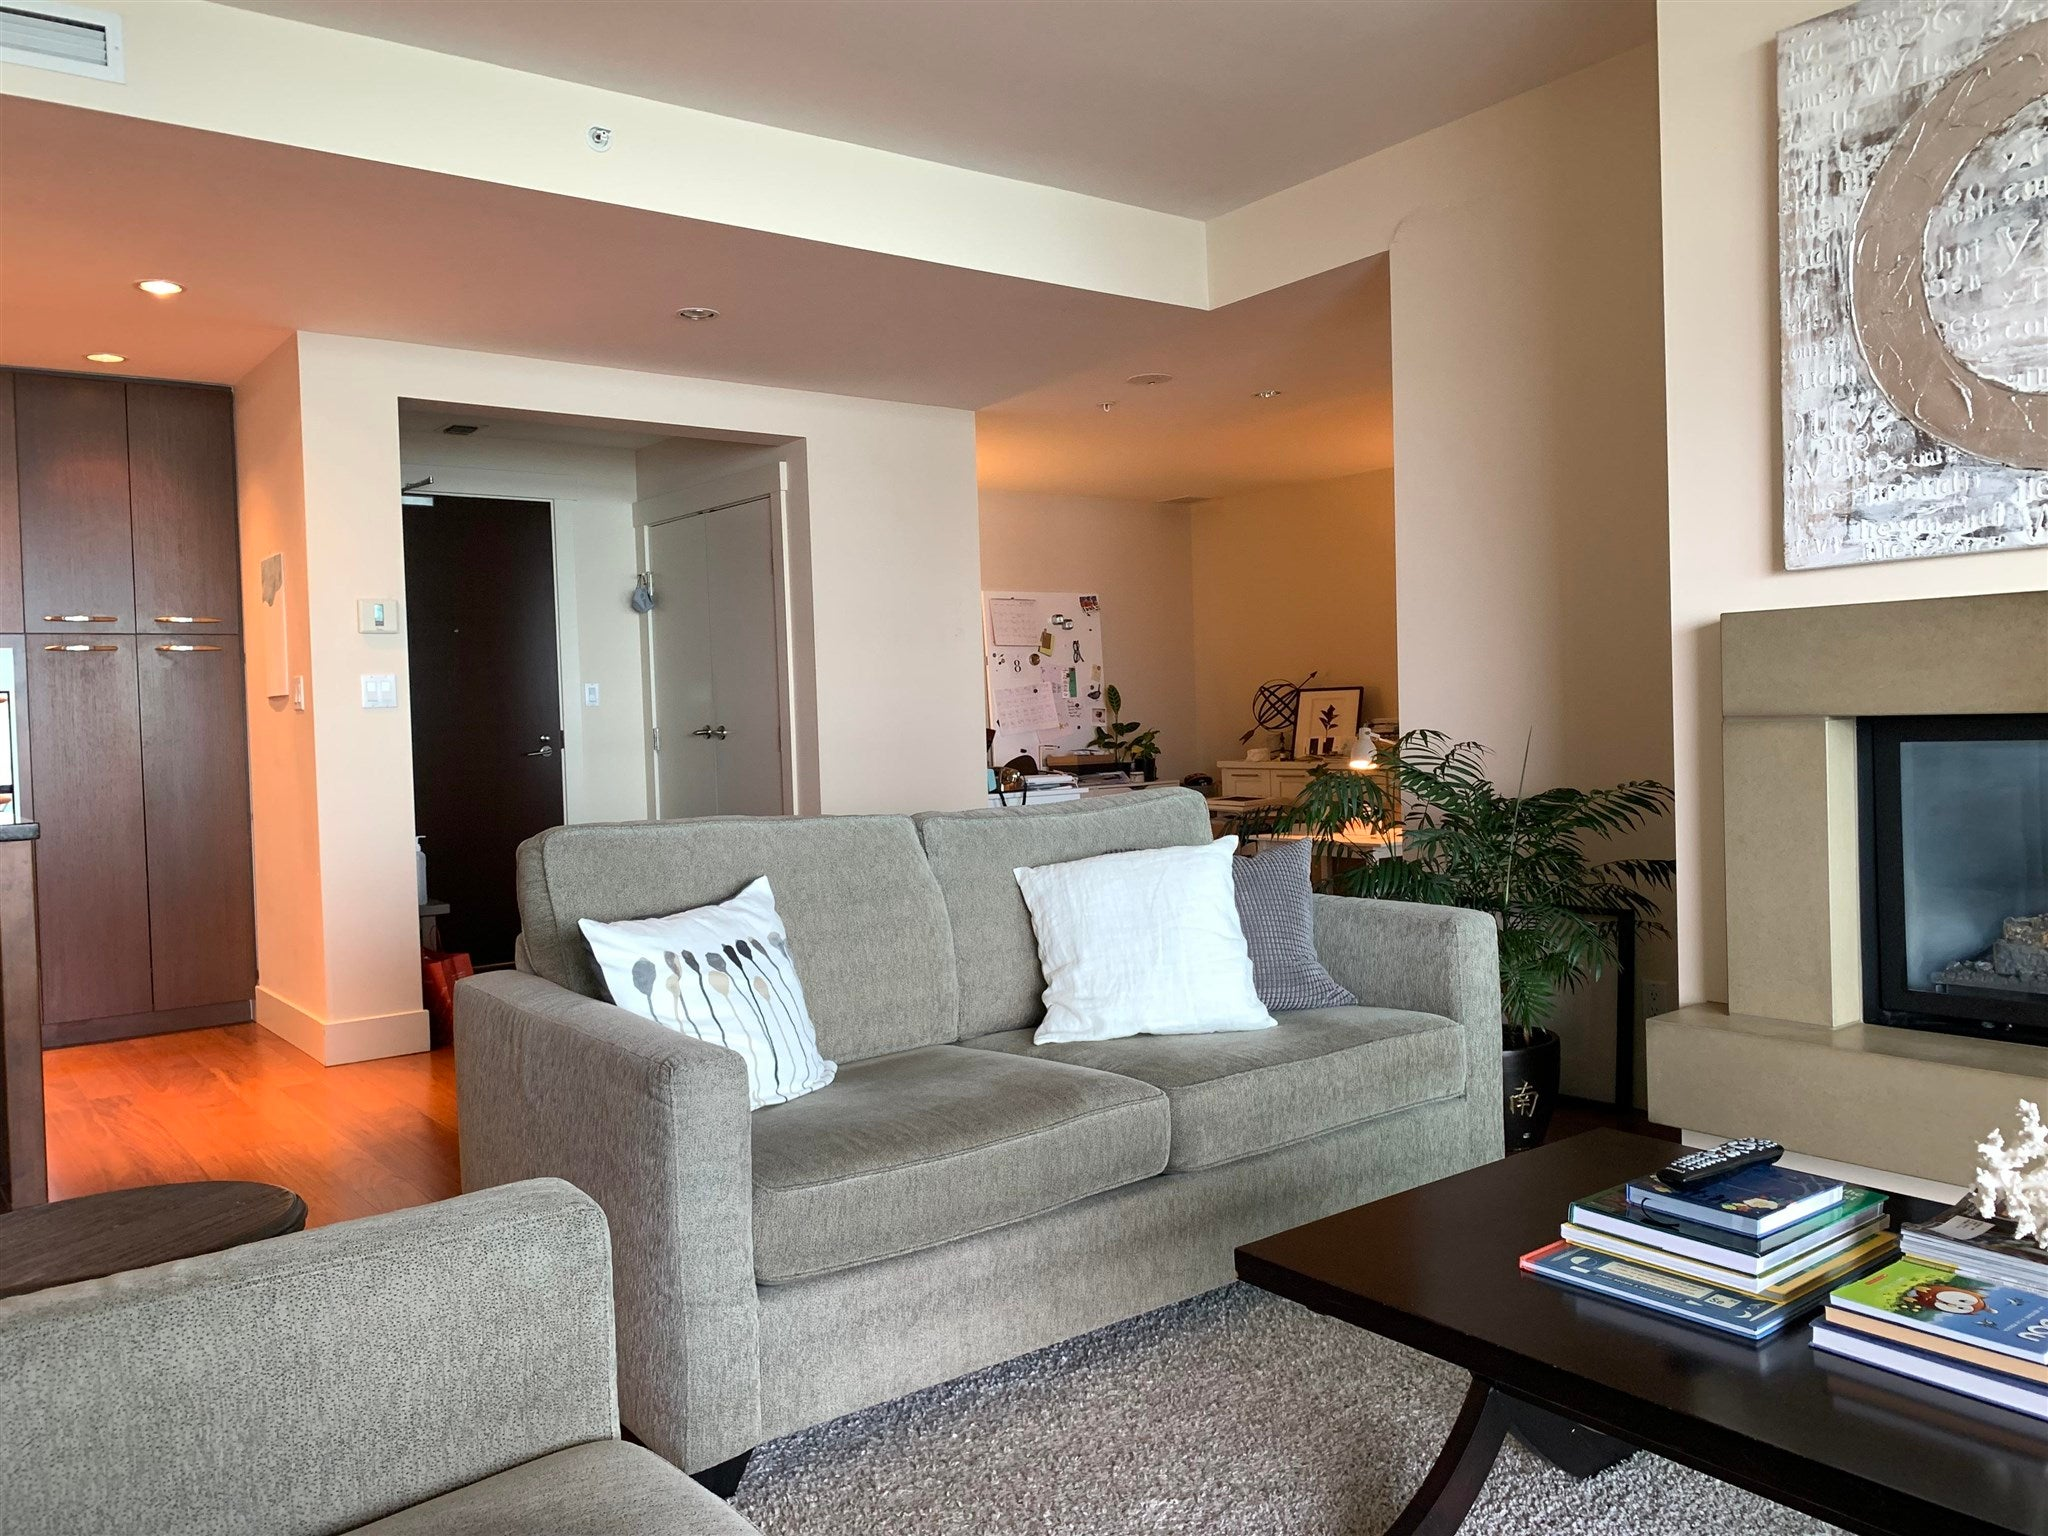 1102 3335 CYPRESS PLACE - Cypress Park Estates Apartment/Condo for sale, 2 Bedrooms (R2607384) - #19